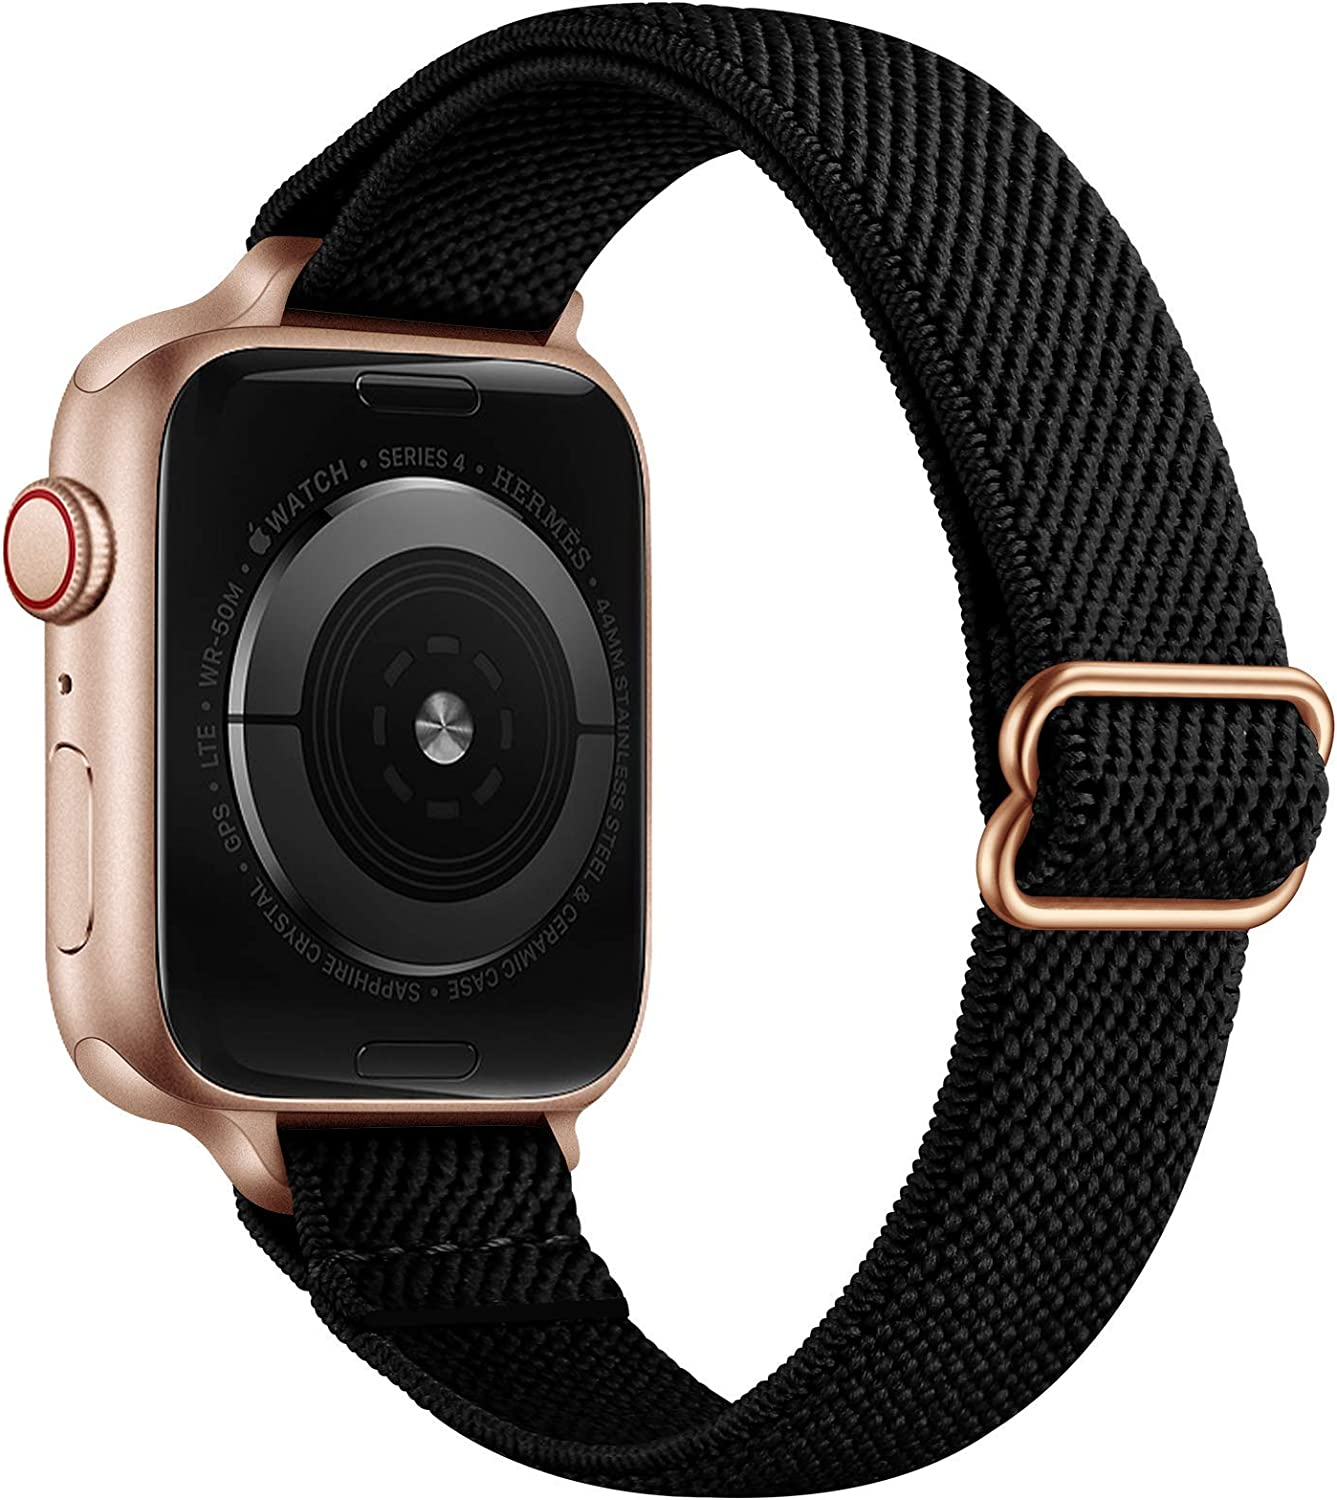 SICCIDEN Slim Stretchy Solo Loop Bands Compatible with Apple Watch Band 40mm 38mm 44mm 42mm, Women Elastics Nylon Thin Band Strap for iWatch SE Series 6 5 4 3 2 1 (Black/Rose Gold, 40mm 38mm)